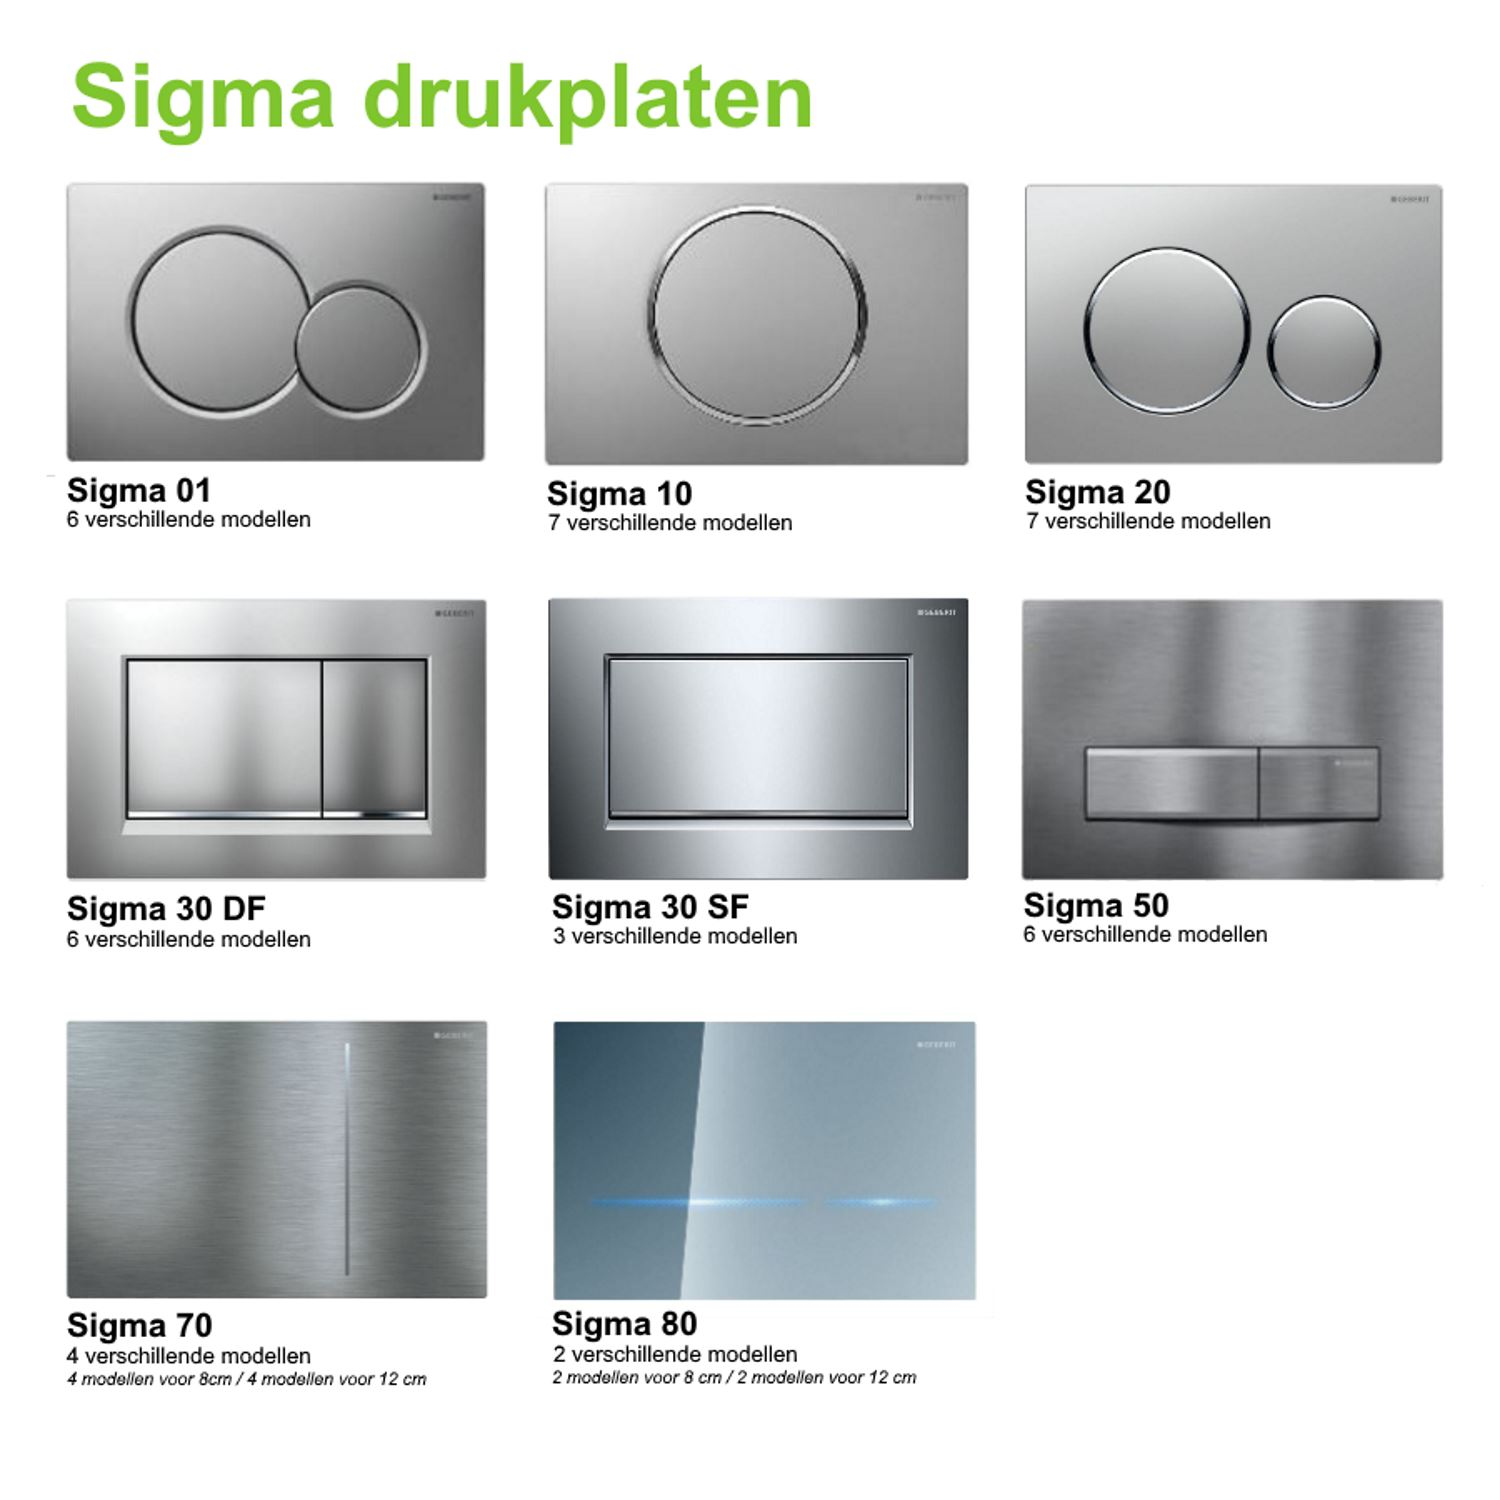 bd62859052d Geberit UP320 Toiletset set01 Basic Smart met Sigma drukplaat